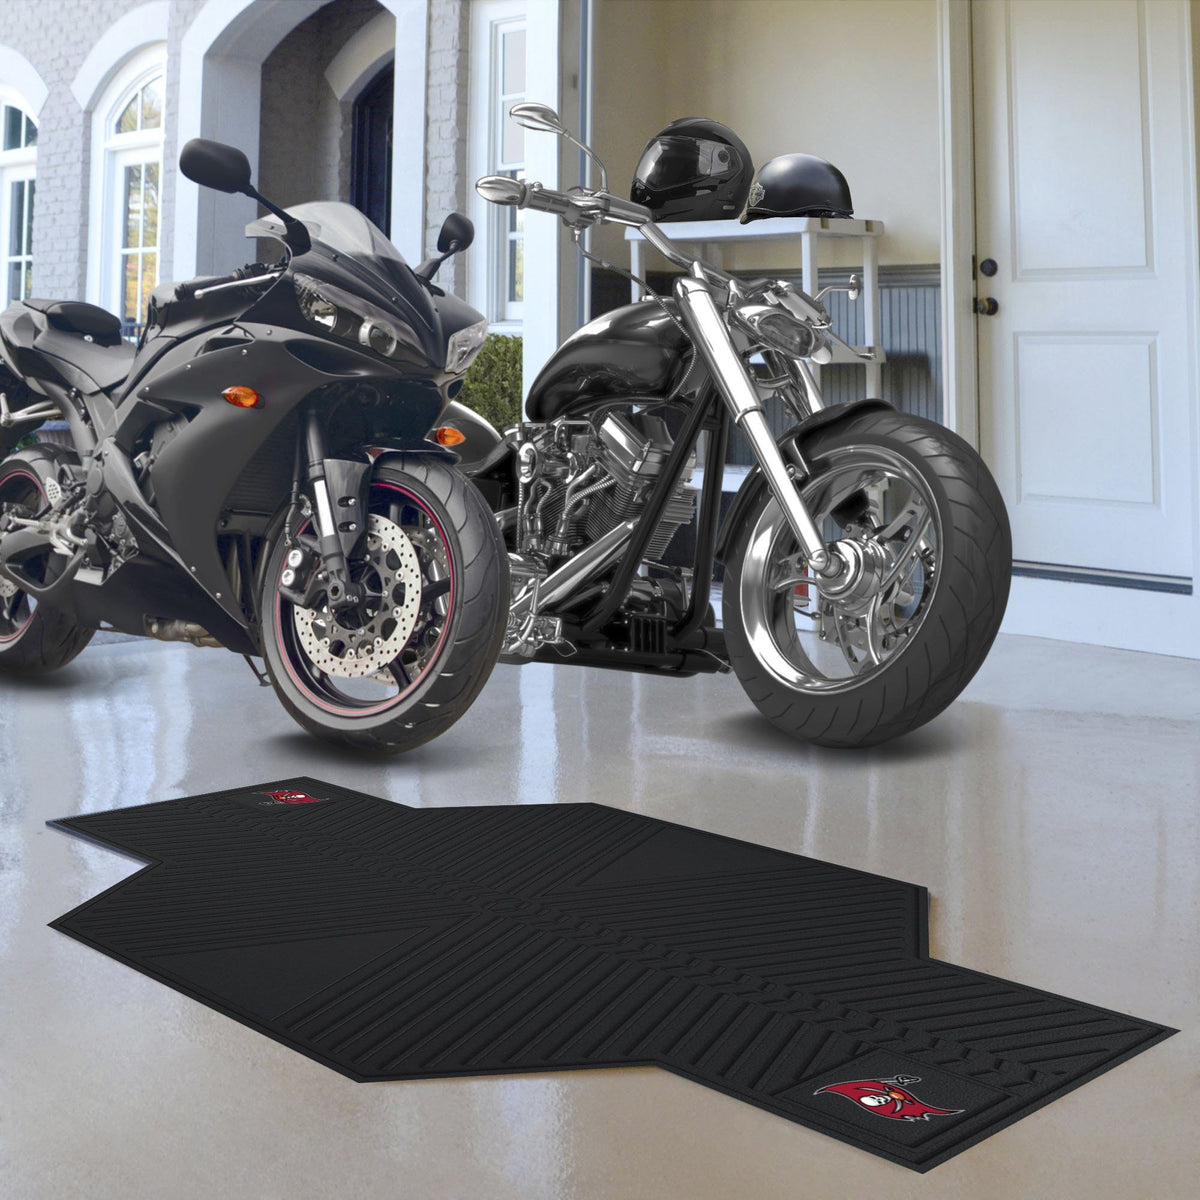 "NFL - Motorcycle Mat, 82.5"" x 42"" NFL Mats, Motorcycle Accessory, Motorcycle Mat, NFL, Auto Fan Mats Tampa Bay Buccaneers"